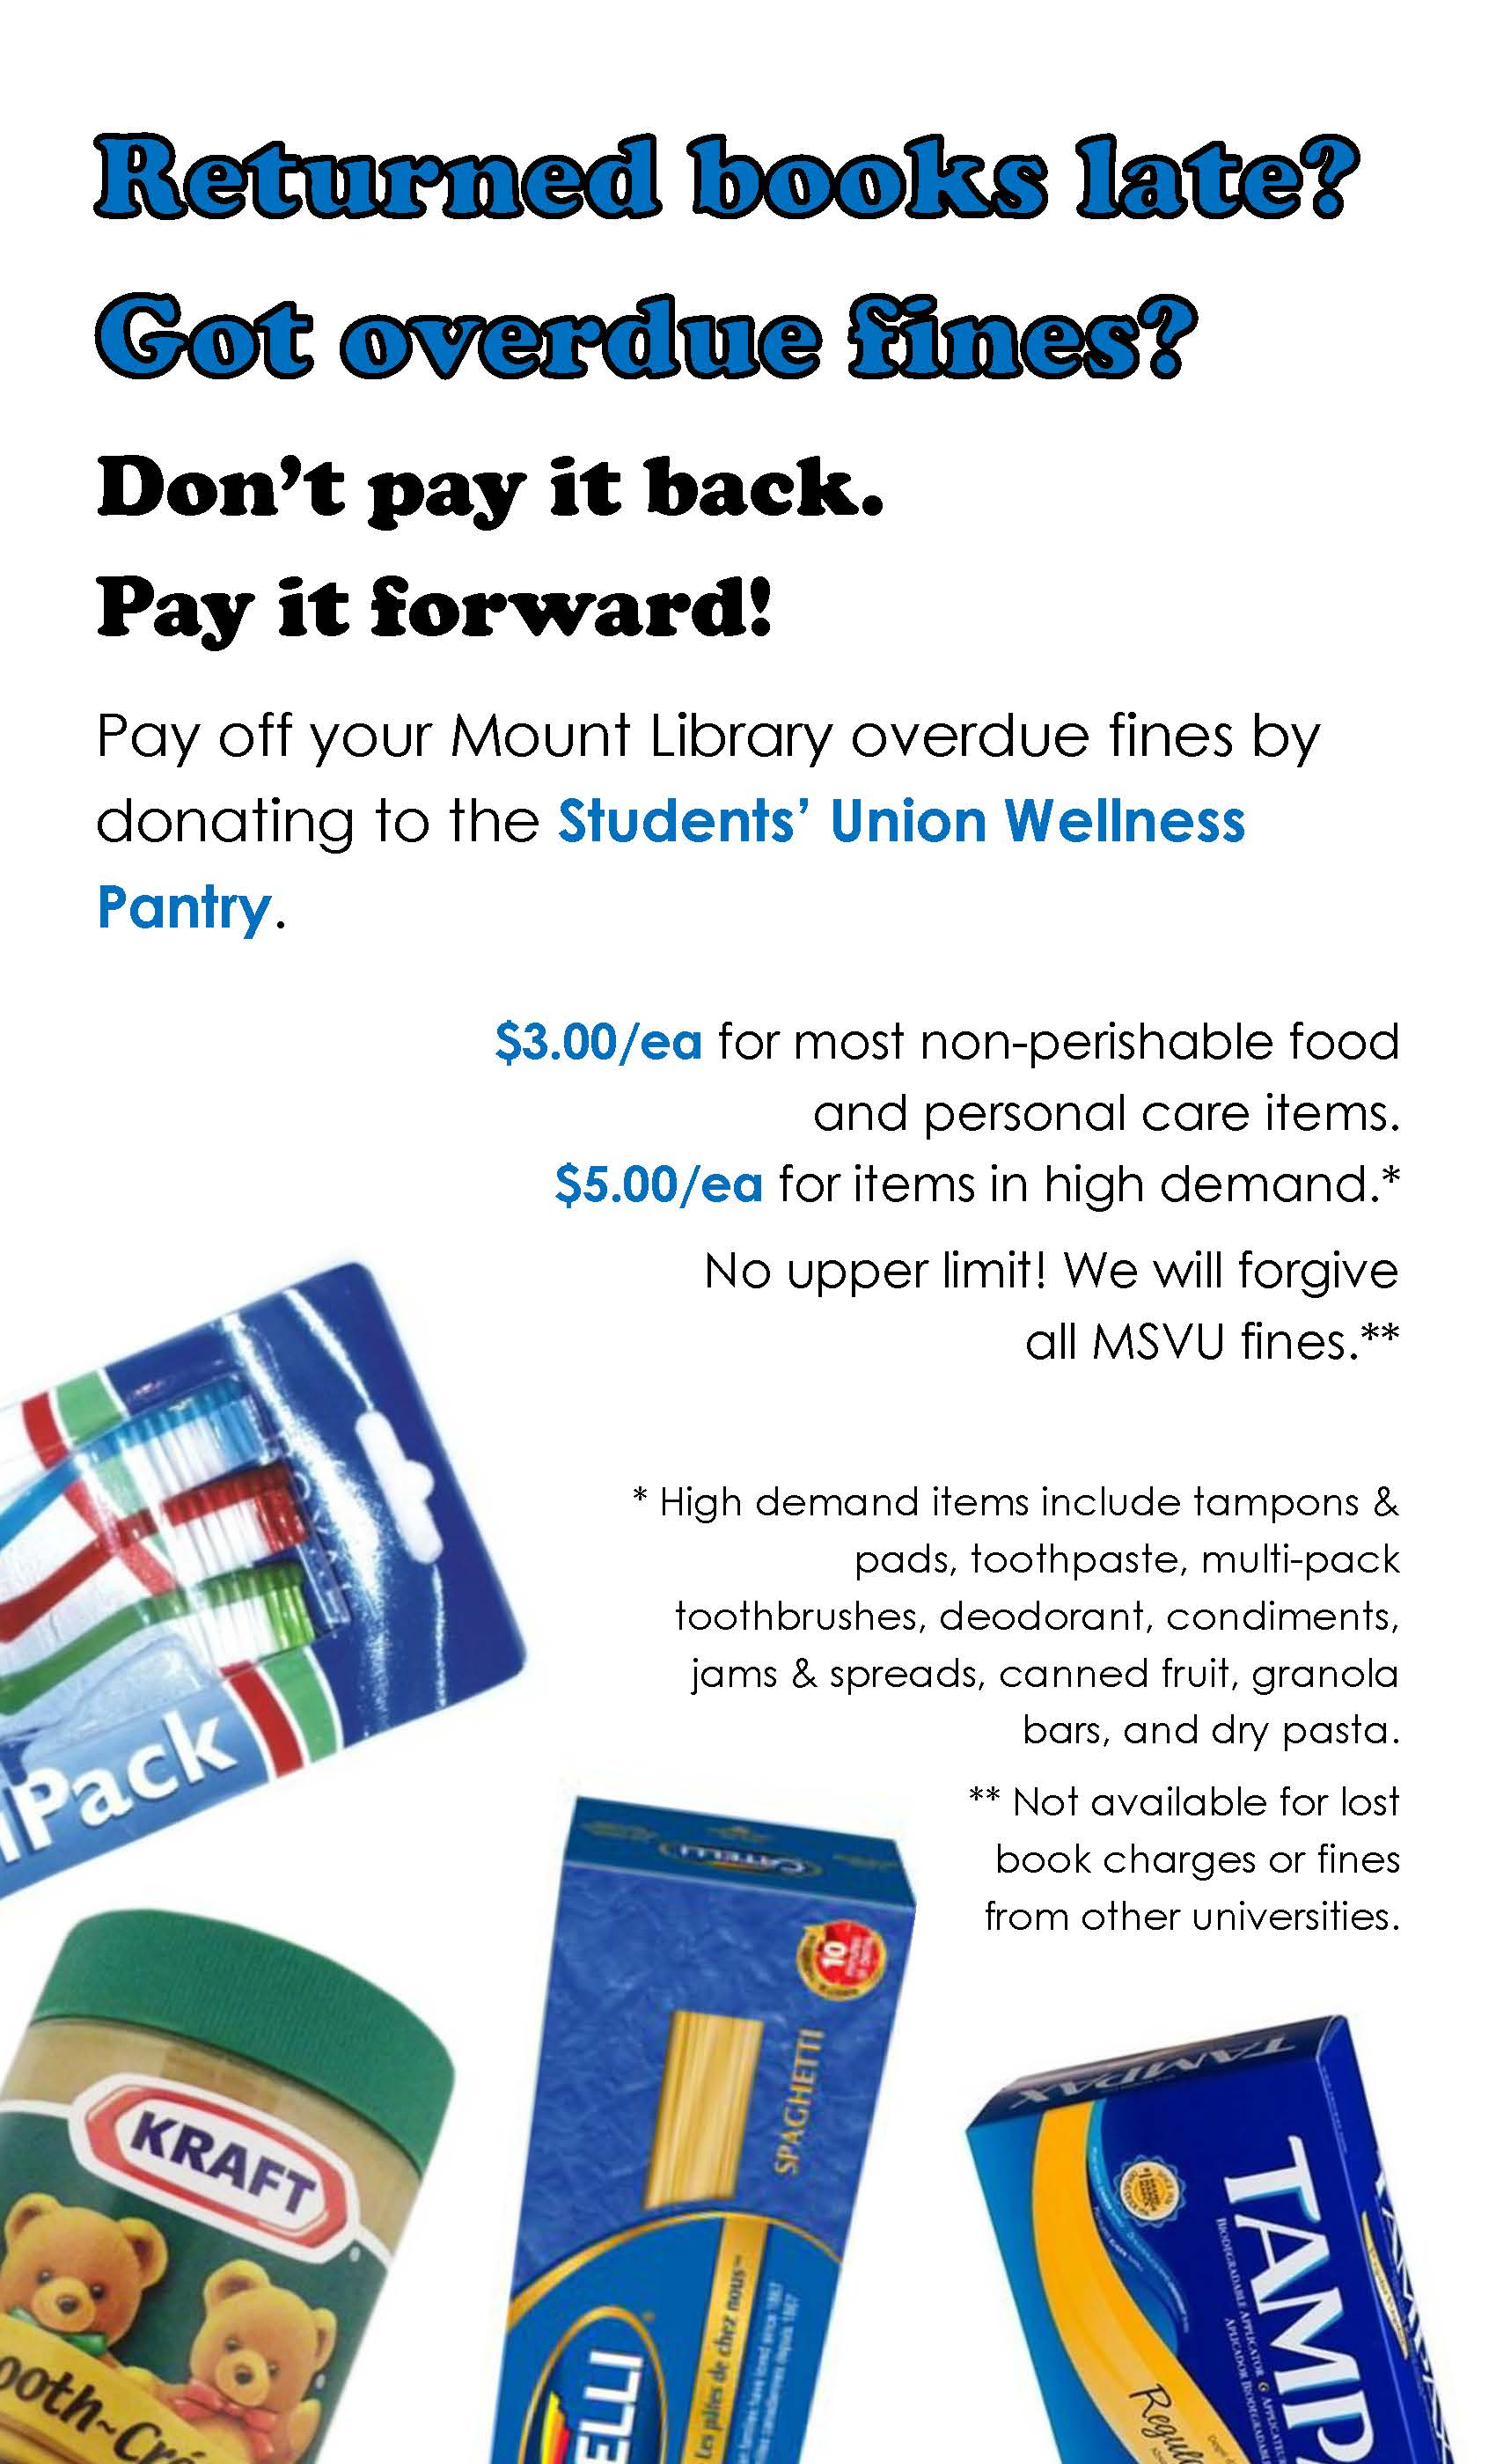 Image of poster, describing how you can donate food bank items to pay Mount Library fines